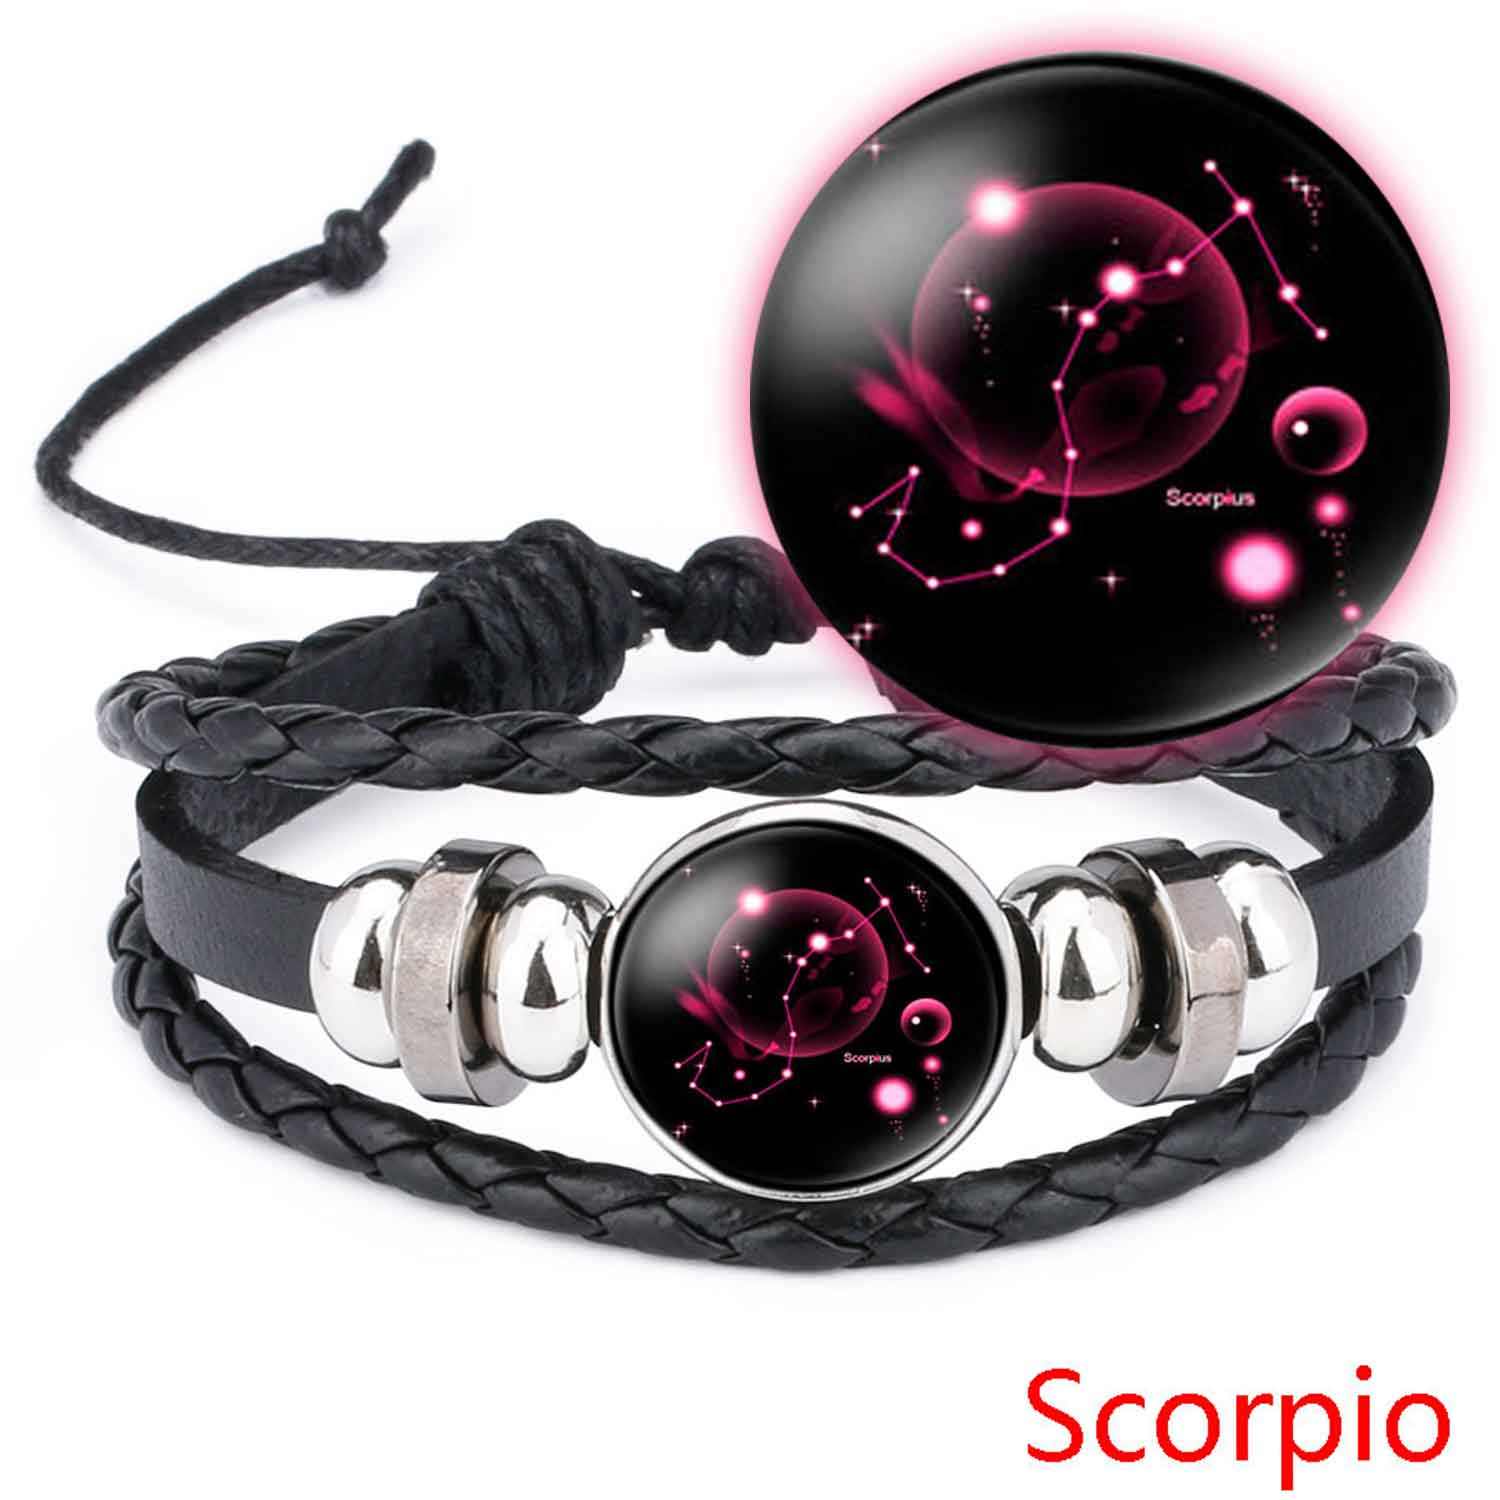 The Fiery Red Scorpio Bracelet - GearBody